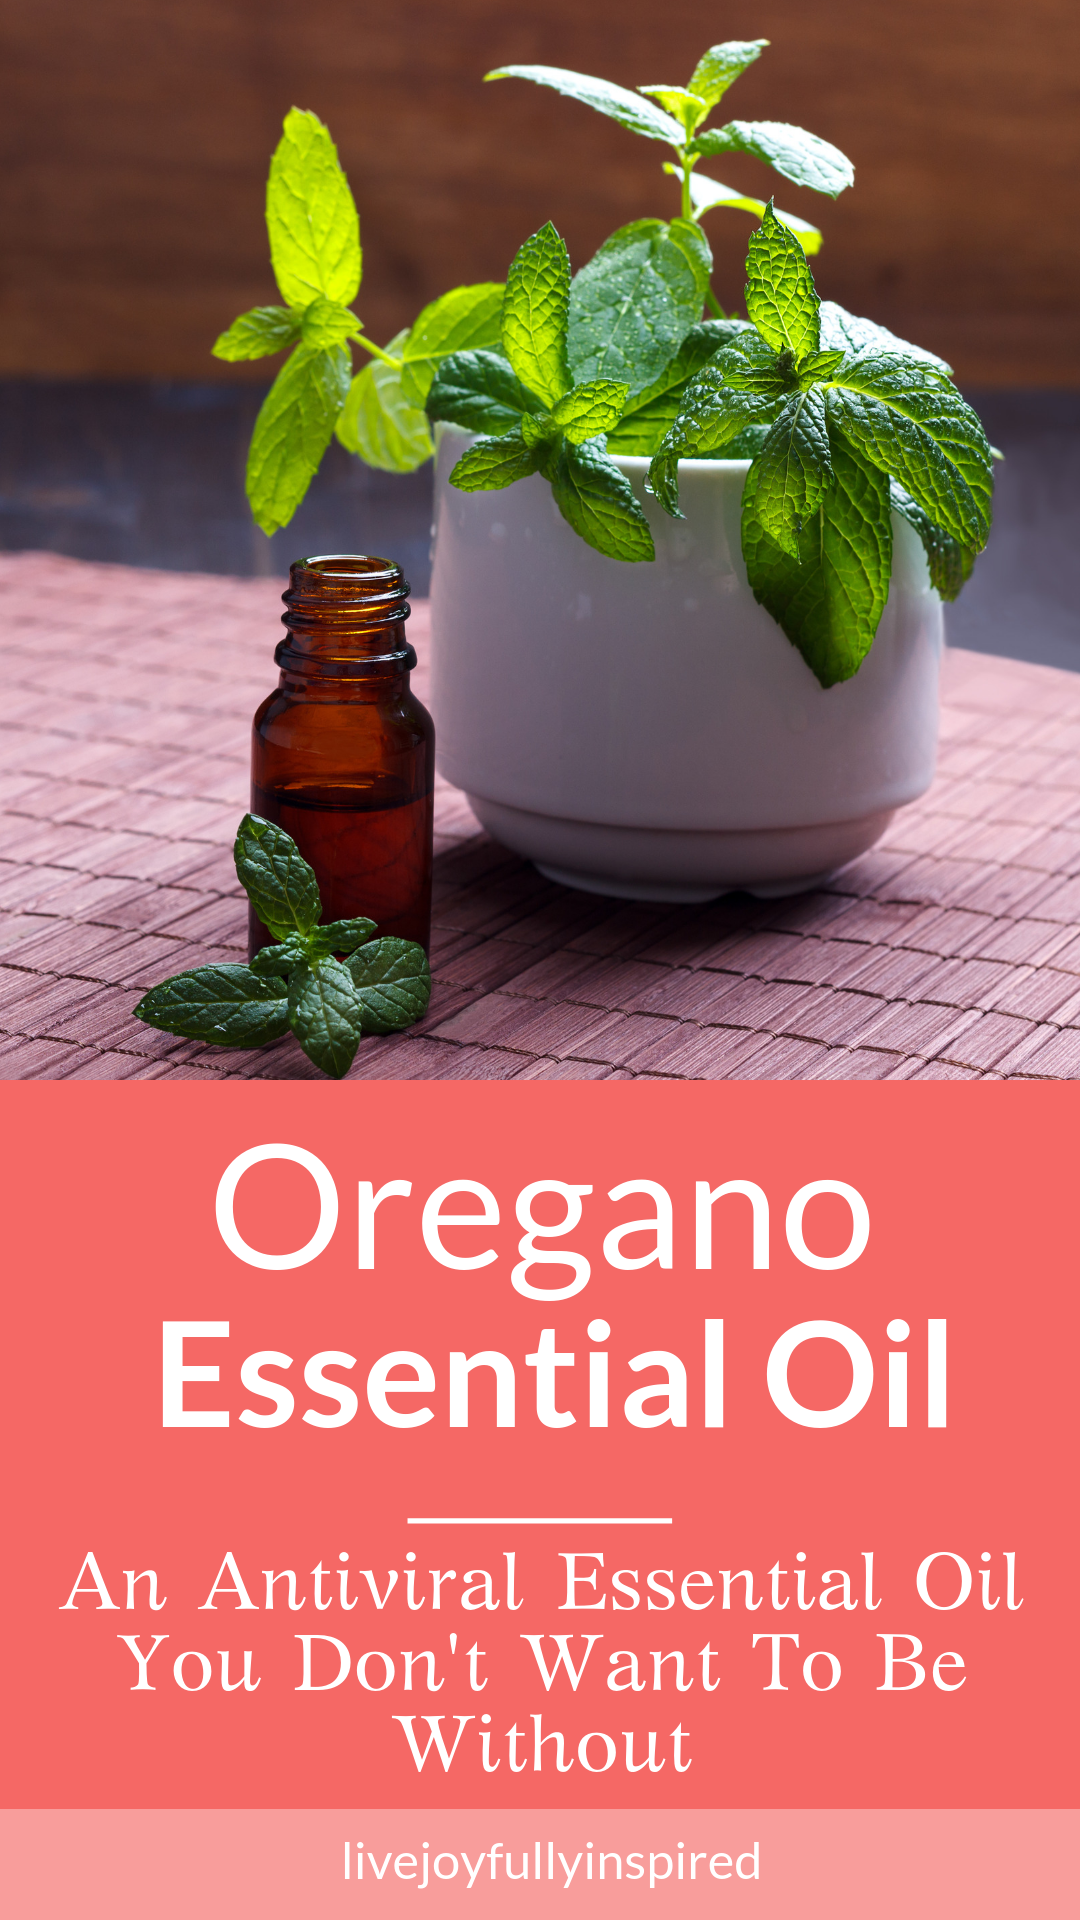 Oregano essential oil is an amazing antibacterial oil to use topically. It is found to be incredibly effective for healing wounds. It smells delicious and is effective for quick results. Oregano essential oil is a must-have for your essential oil pantry. #oreganoessentialoil #antiviral #tightmuscles